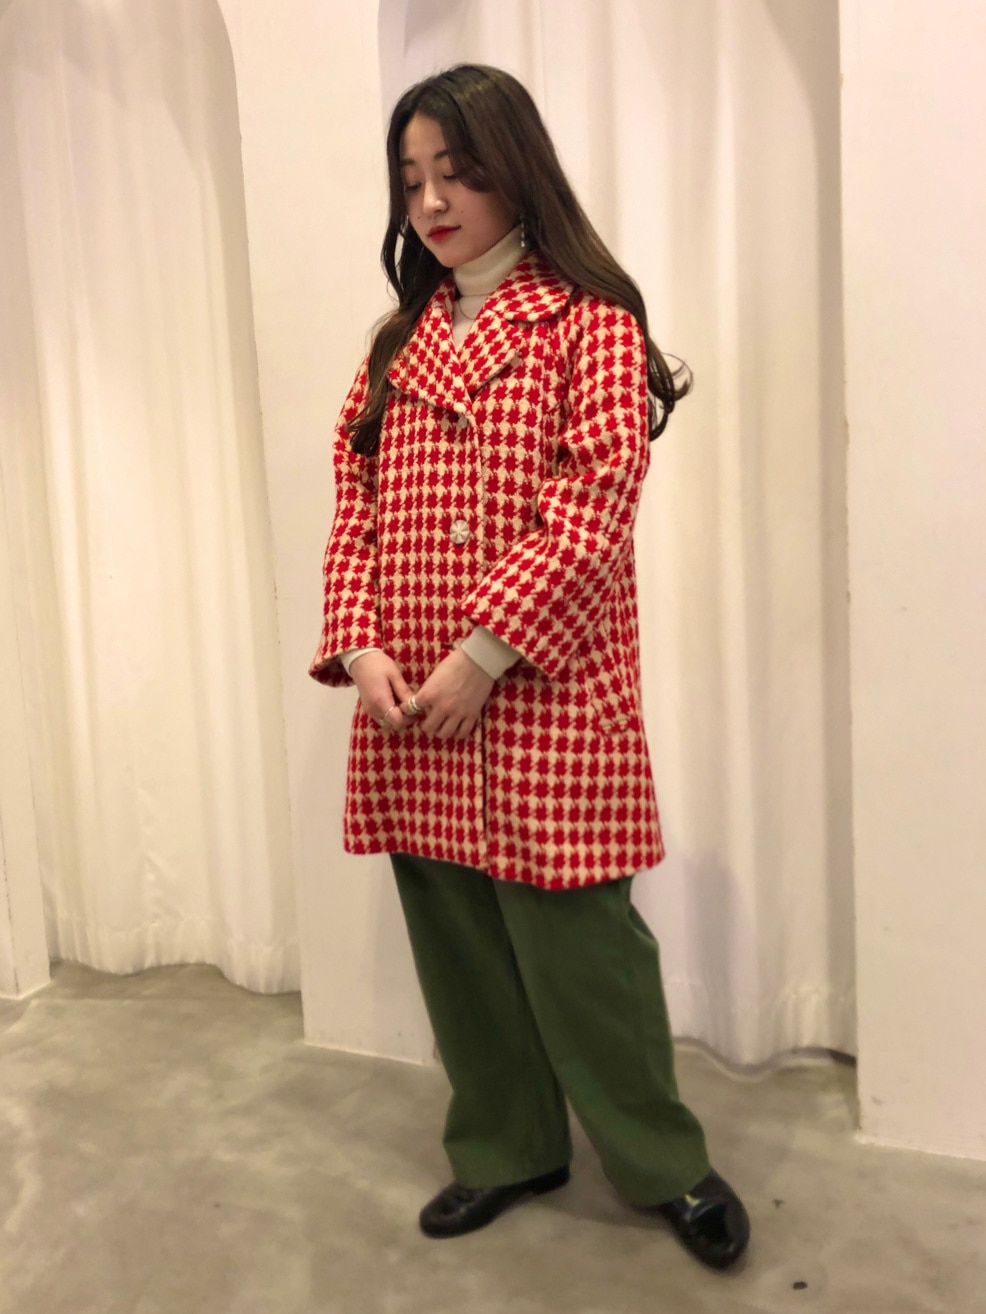 Dot and Stripes CHILD WOMAN ラフォーレ原宿 身長:153cm 2020.11.09